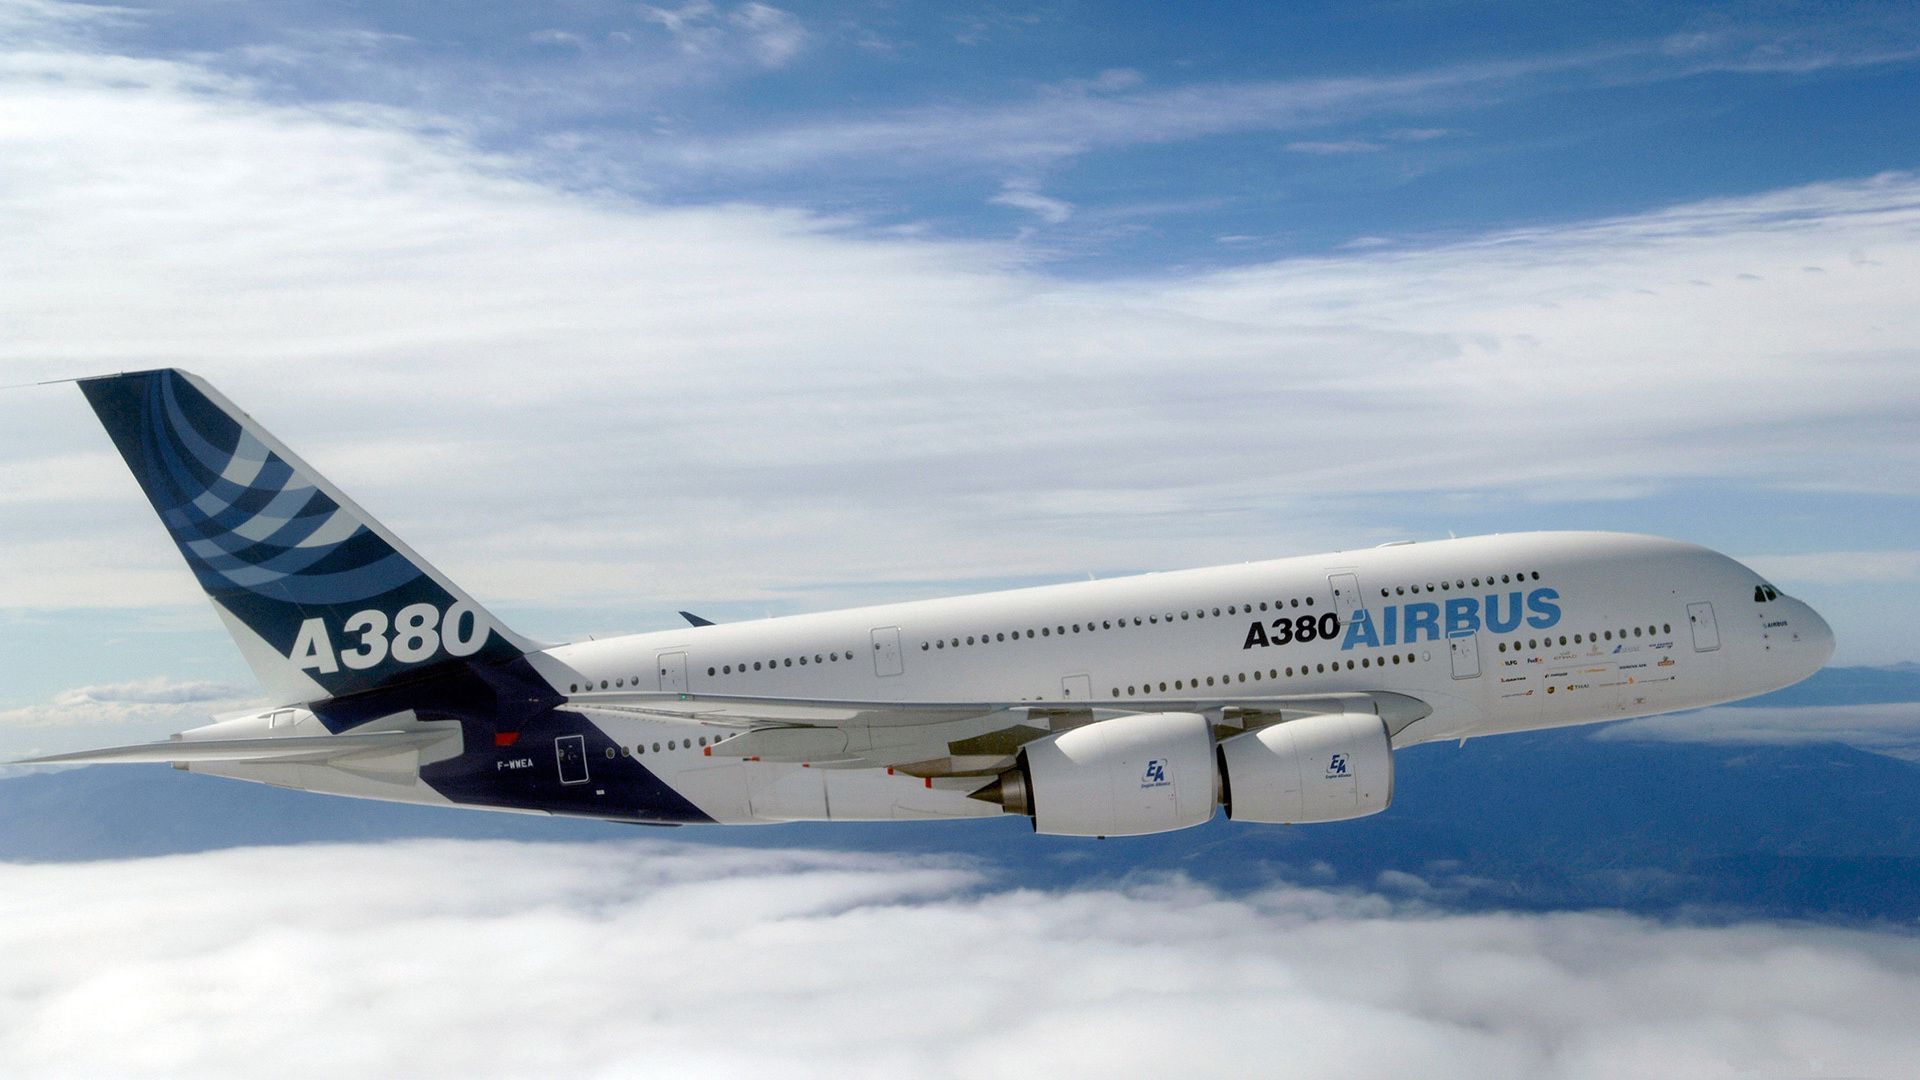 Airbus A380 Aircraft Wallpaper Aircraft Wallpaper Background Photo 1920x1080